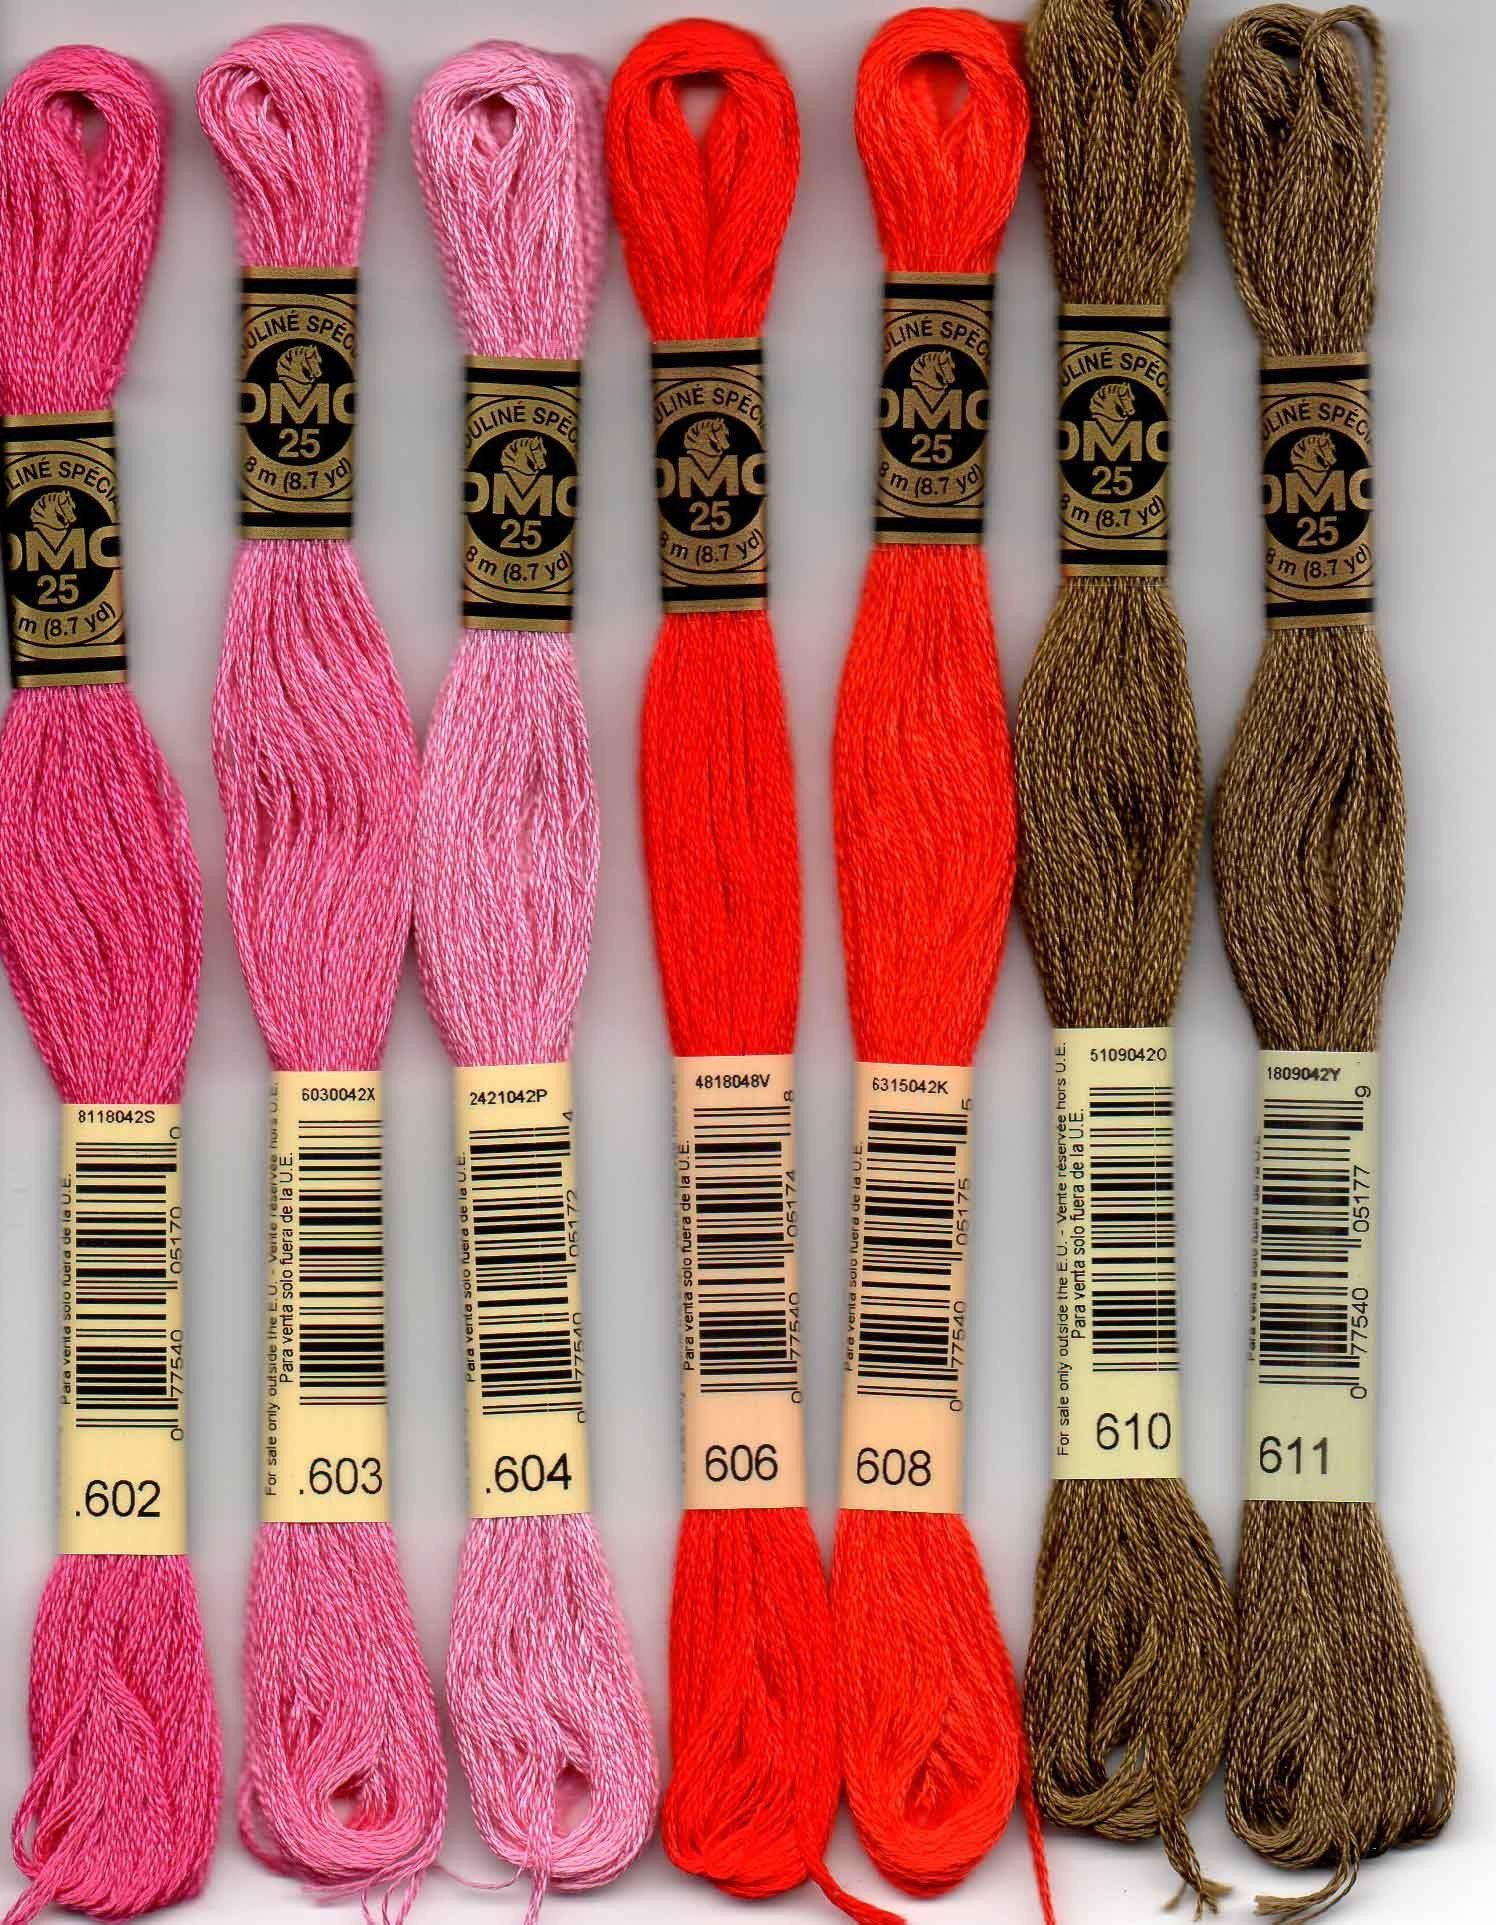 Colour 676 Light Old Gold DMC Stranded Cotton Embroidery Floss